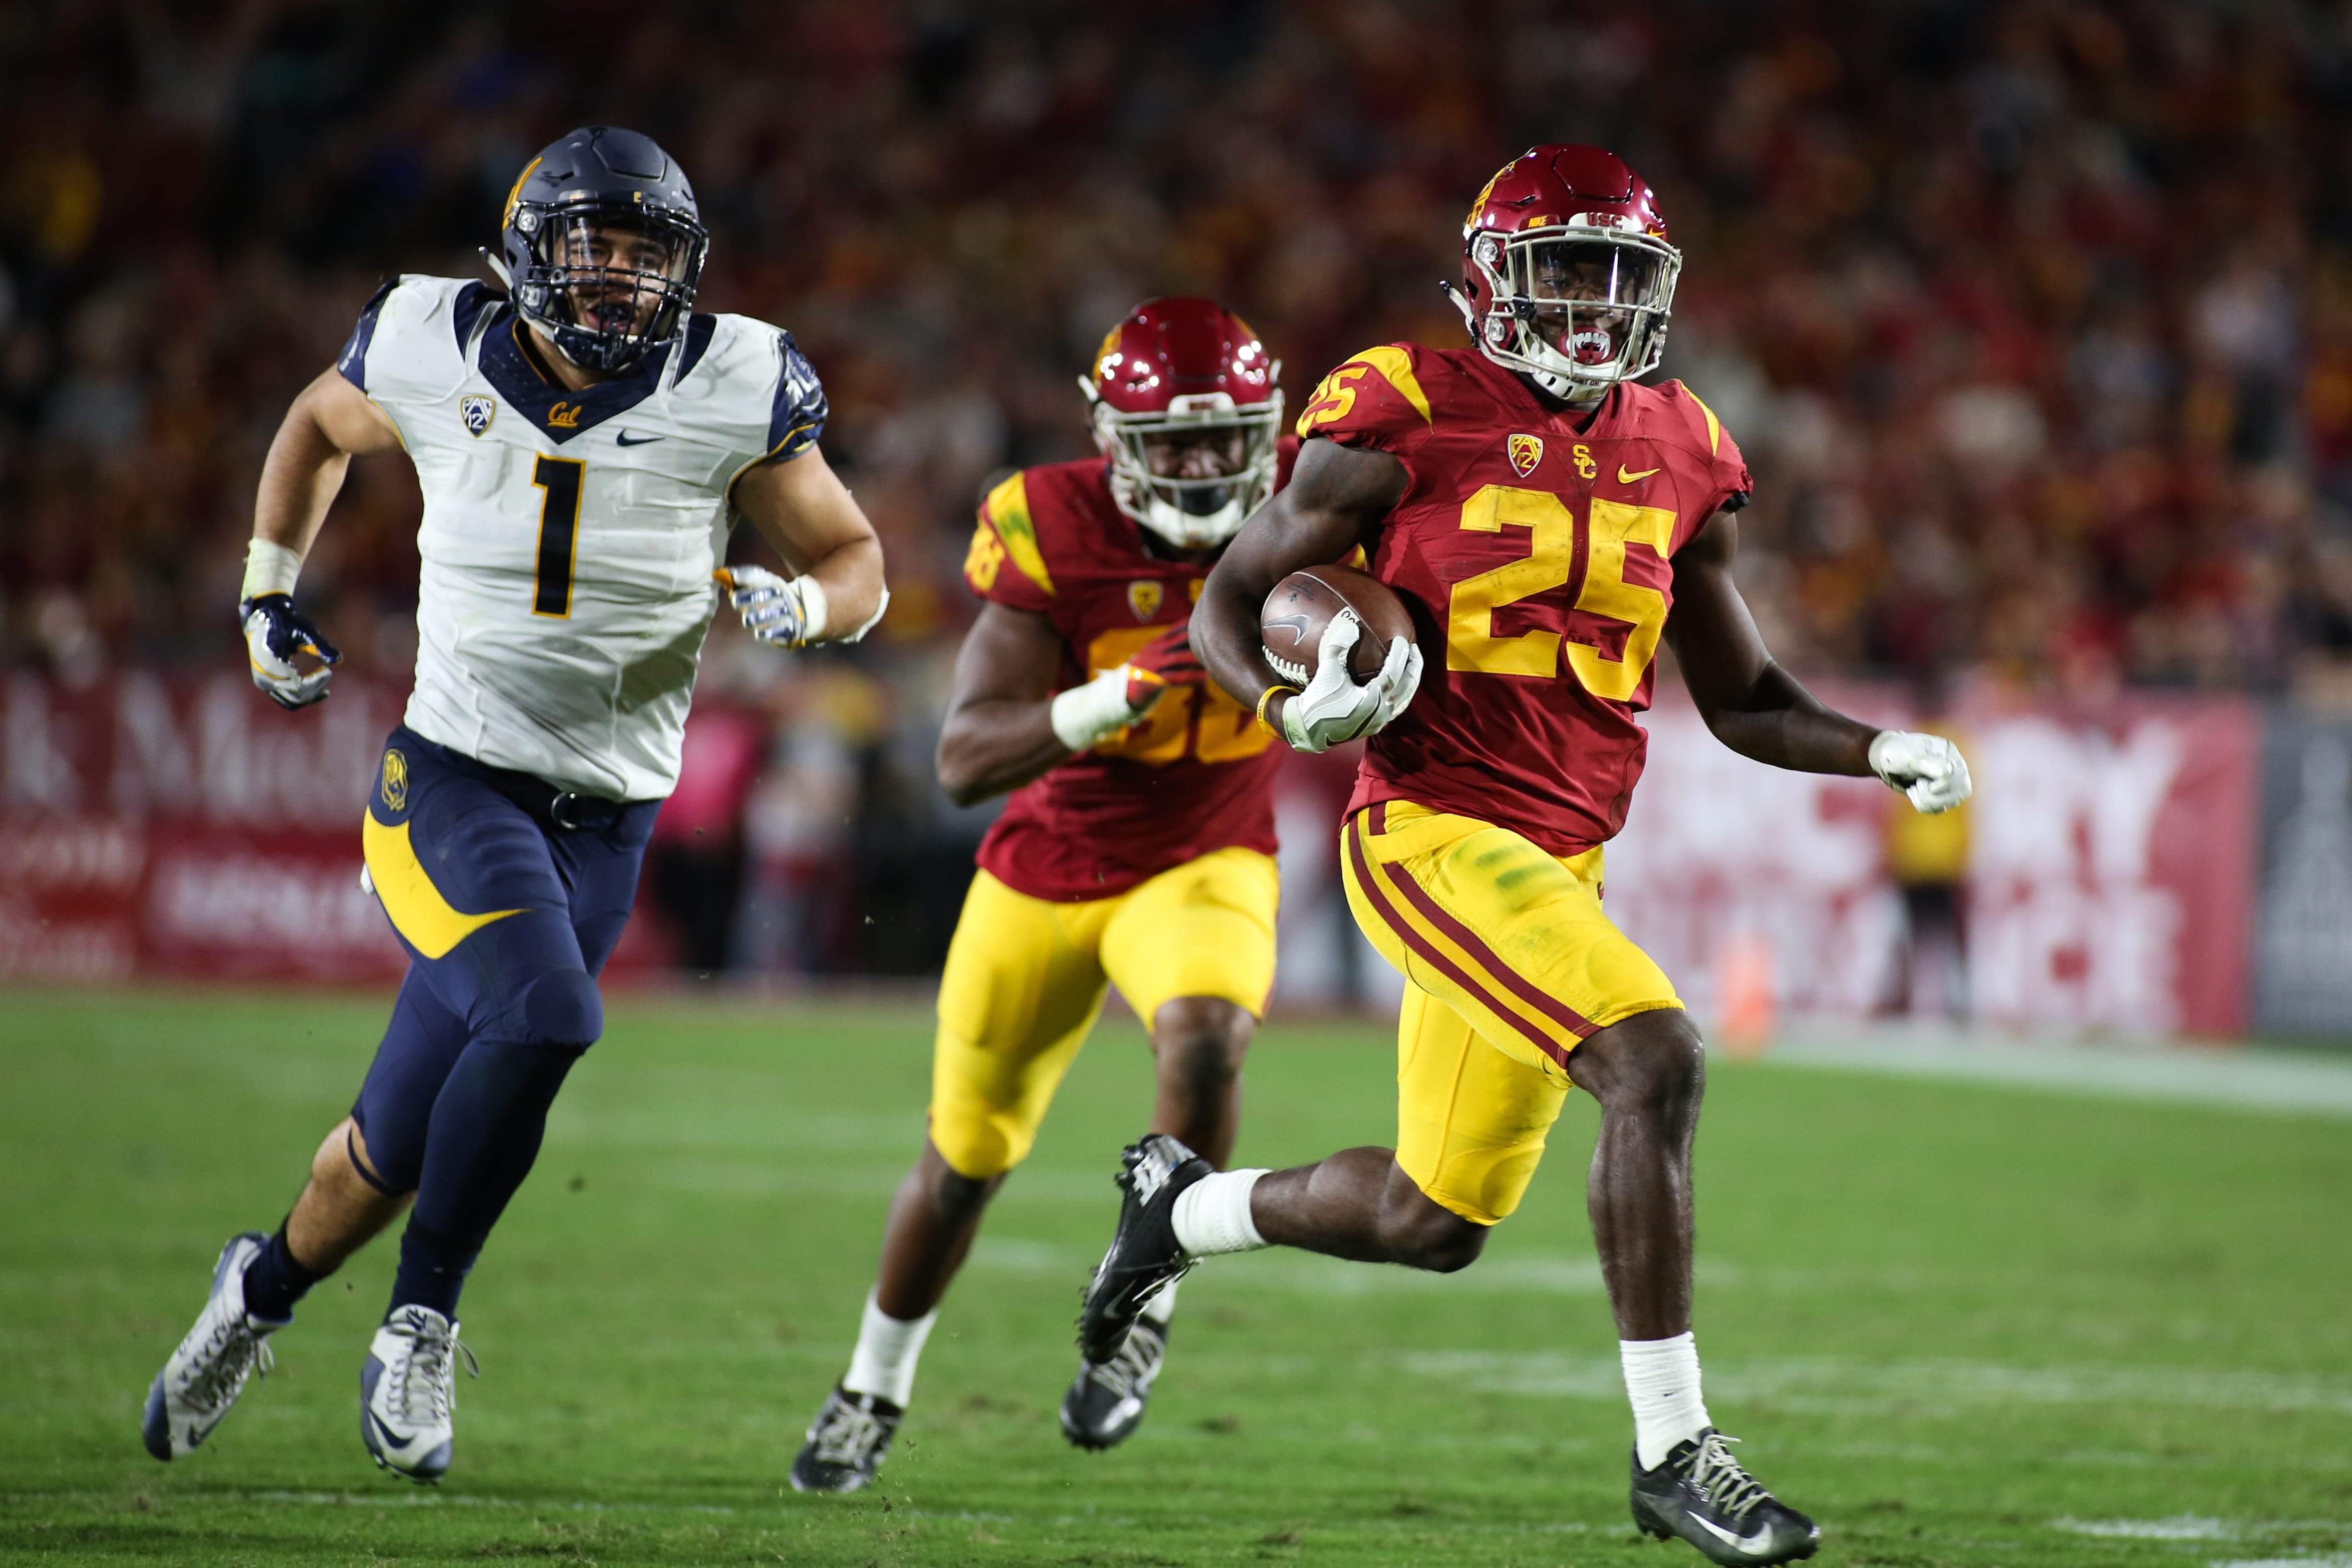 Katie Chin | Daily Trojan In good hands · Senior running back Justin Davis will depart USC after this season, but the Trojans' run game looks intact with sophomores Ronald Jones II (above) and Aca'Cedric Ware waiting in the wings.